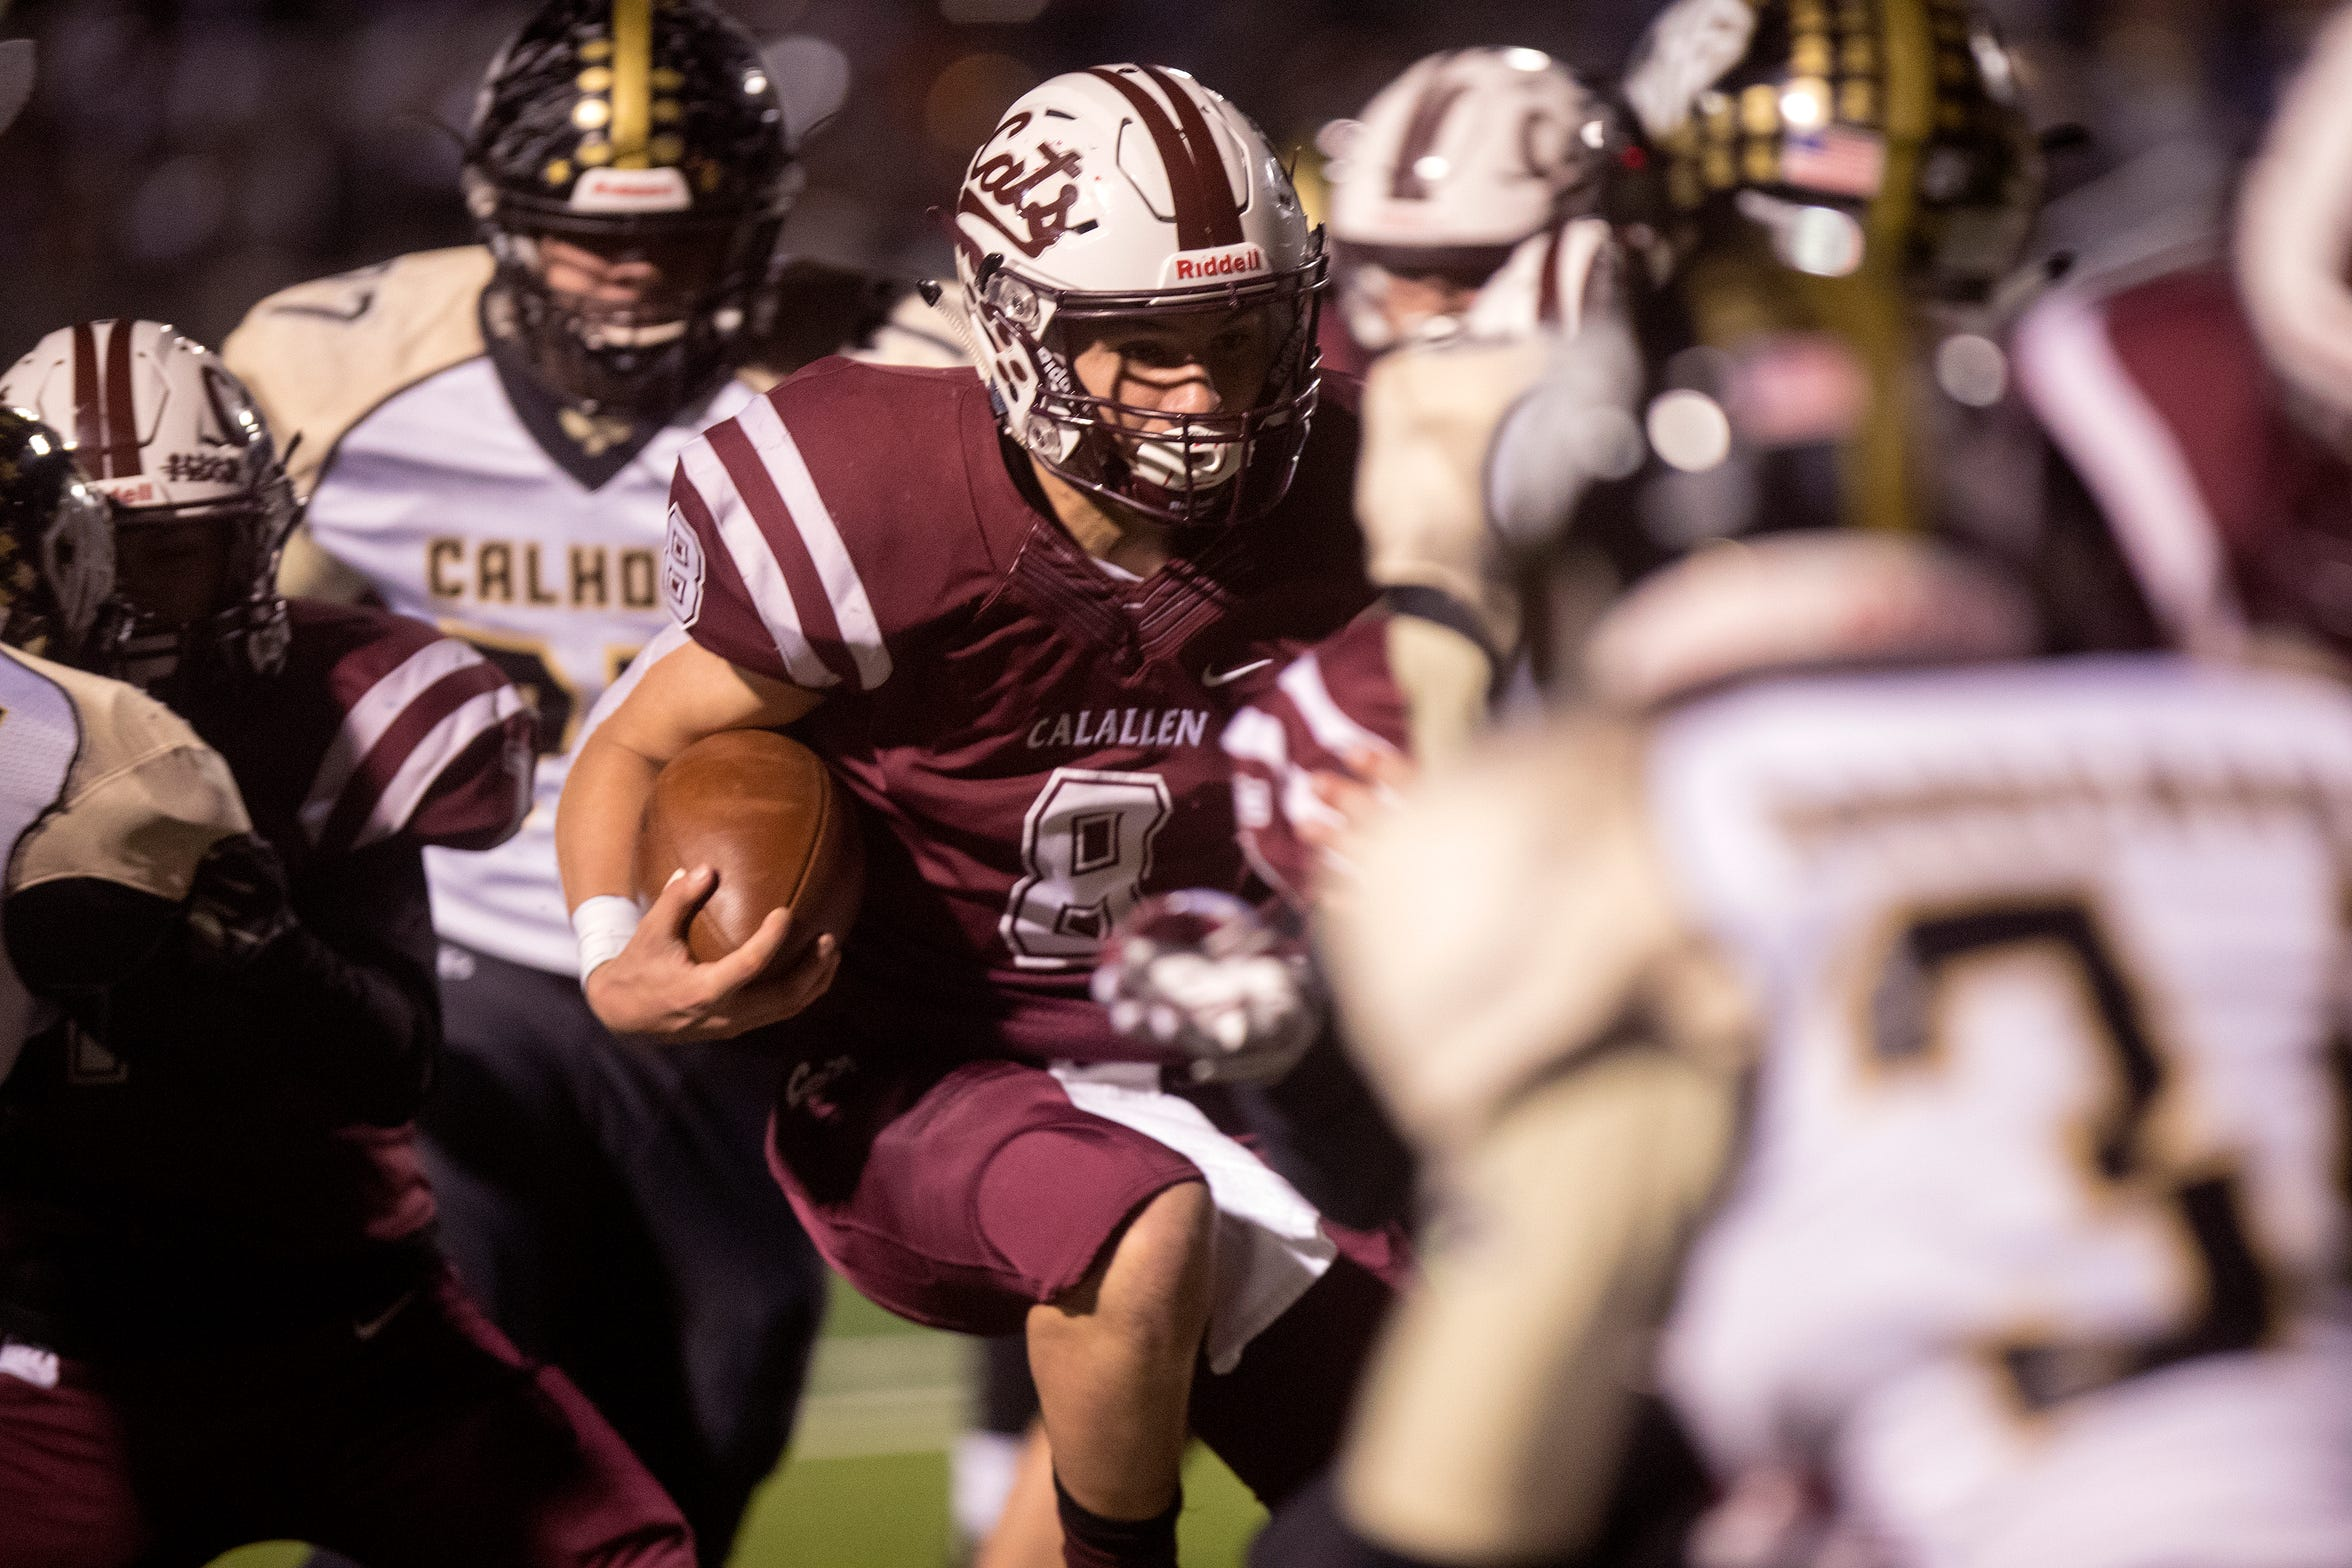 Calallen Wildcat quarterback Jarrett Garza carries the ball in the first quarter of the 15-5A Division II game against Port Lavaca Calhoun on Friday, November 9, 2018 at Phil Danaher Field at Wildcat Stadium. Calallen won the game 23-20 to win the district championship.